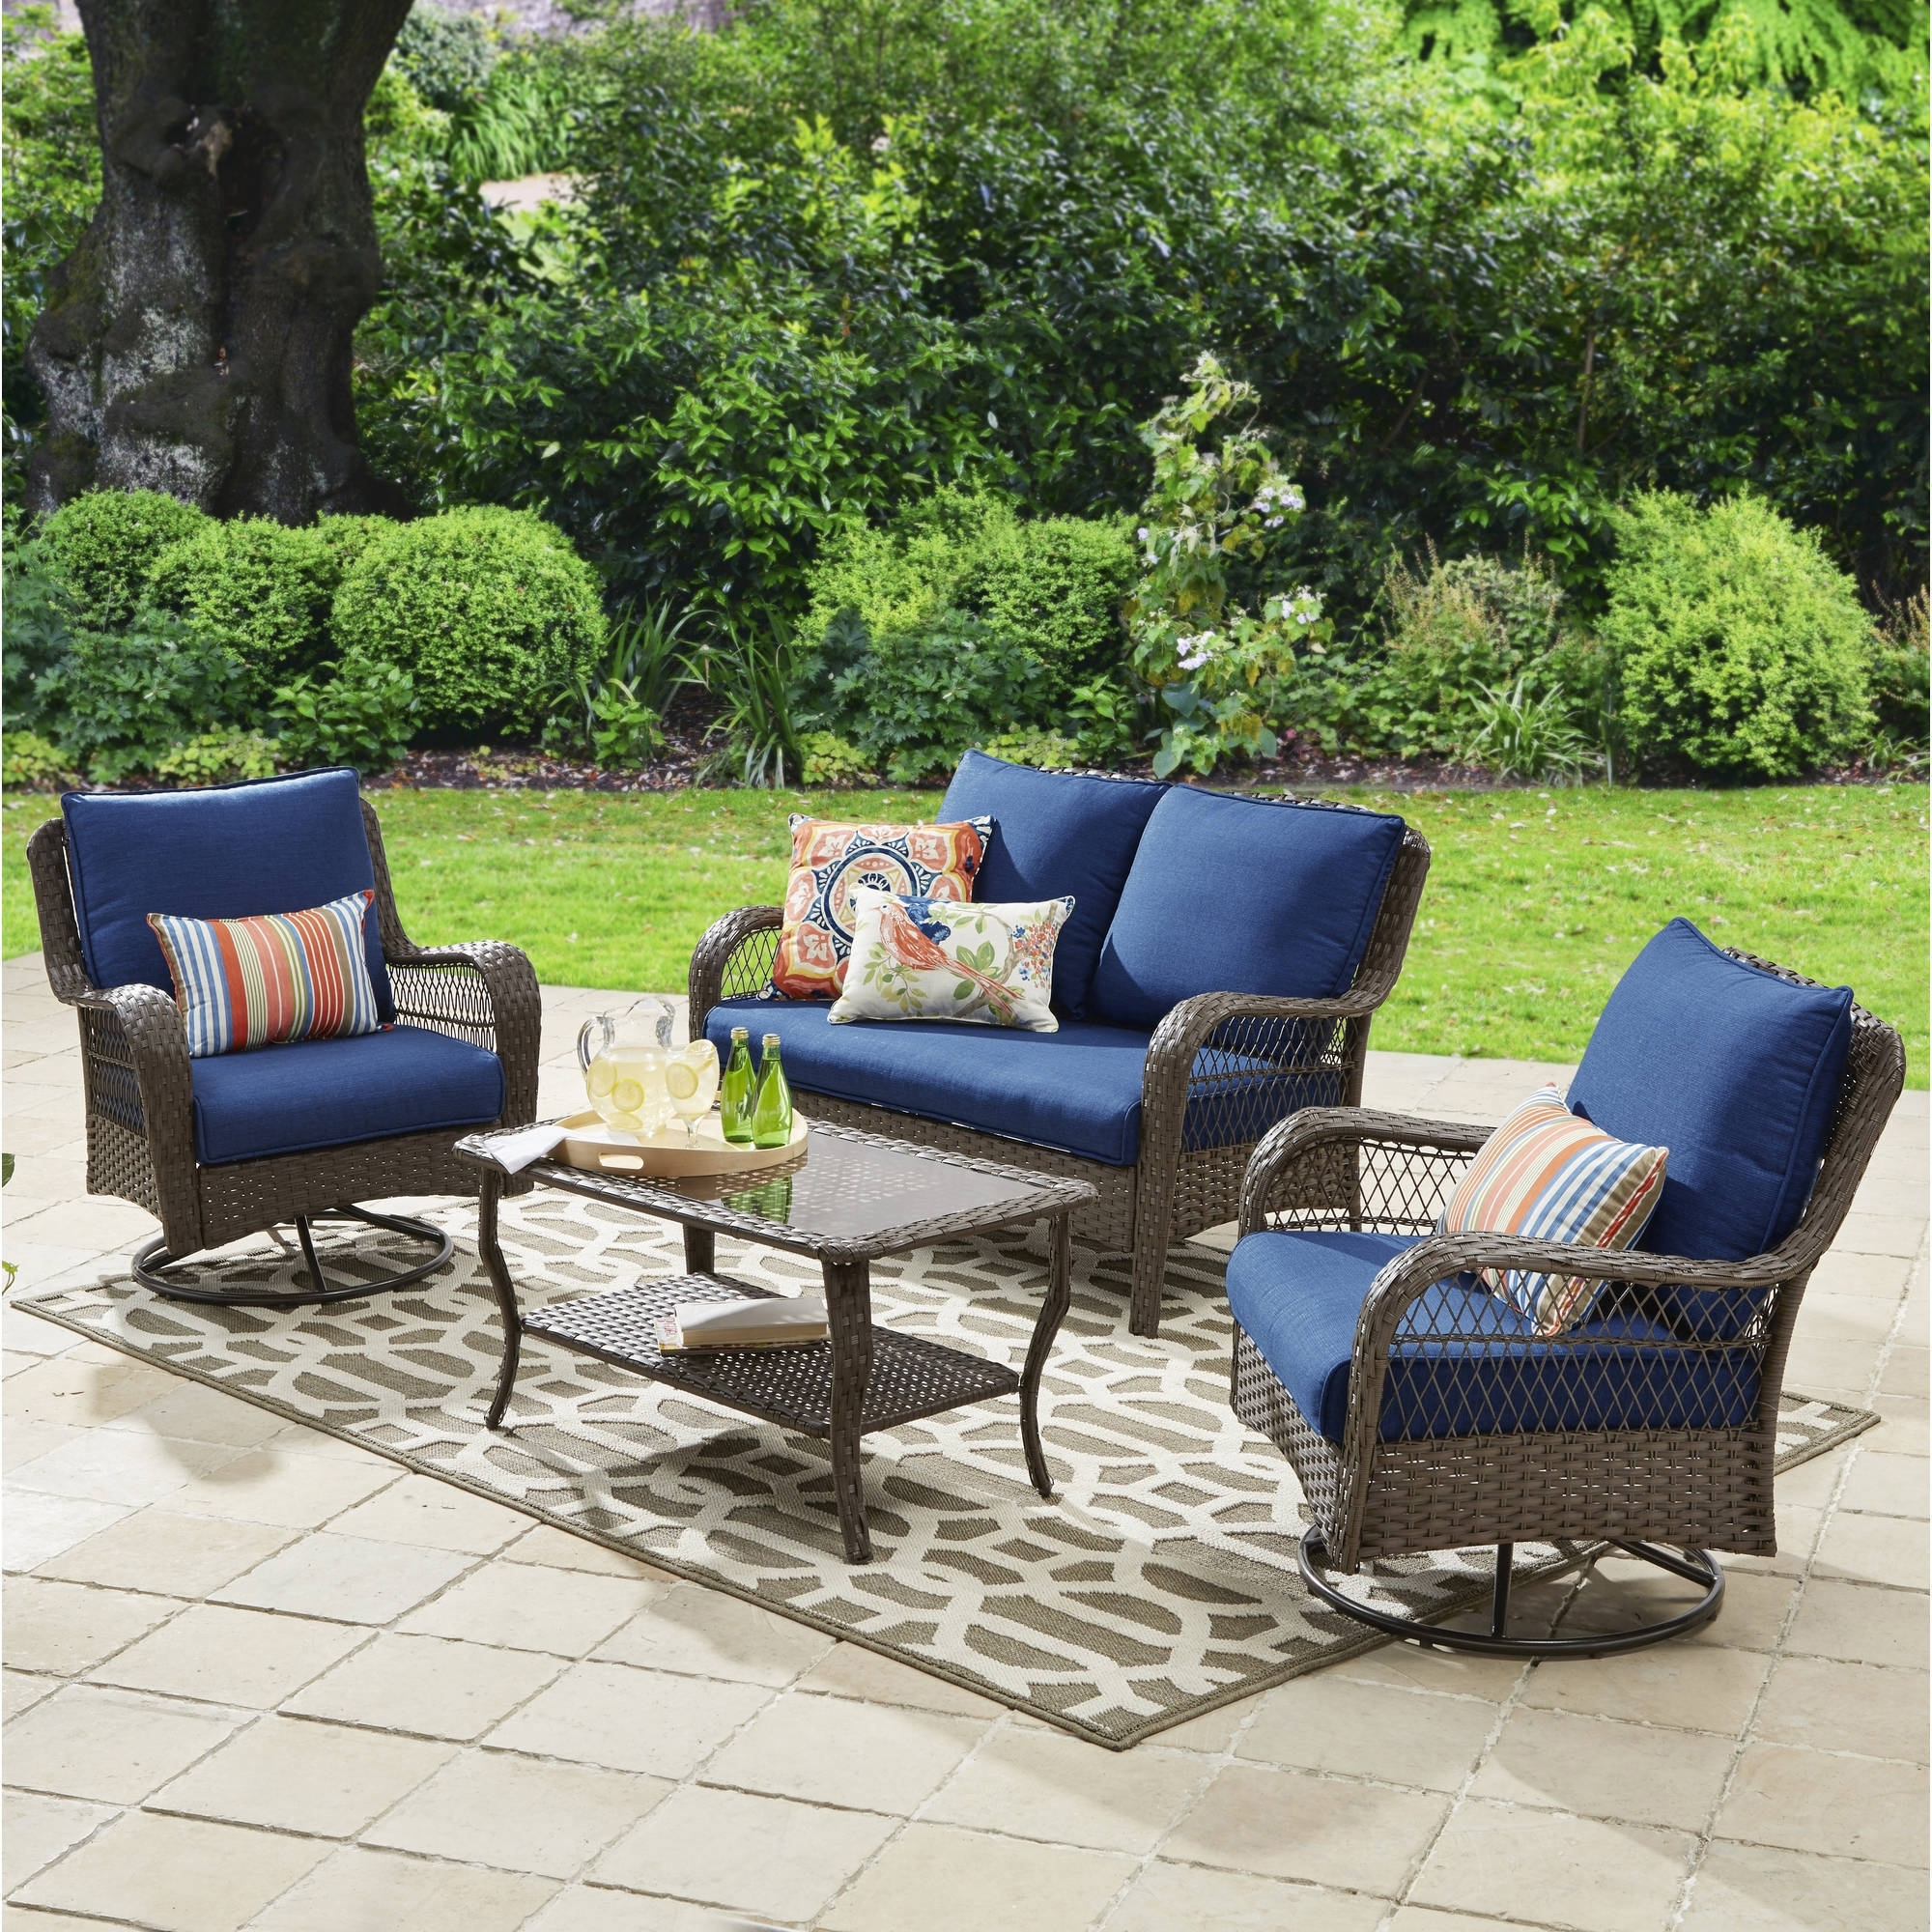 Patio Conversation Sets At Walmart For Current Better Homes And Gardens Colebrook 4 Piece Outdoor Conversation Set (View 2 of 20)